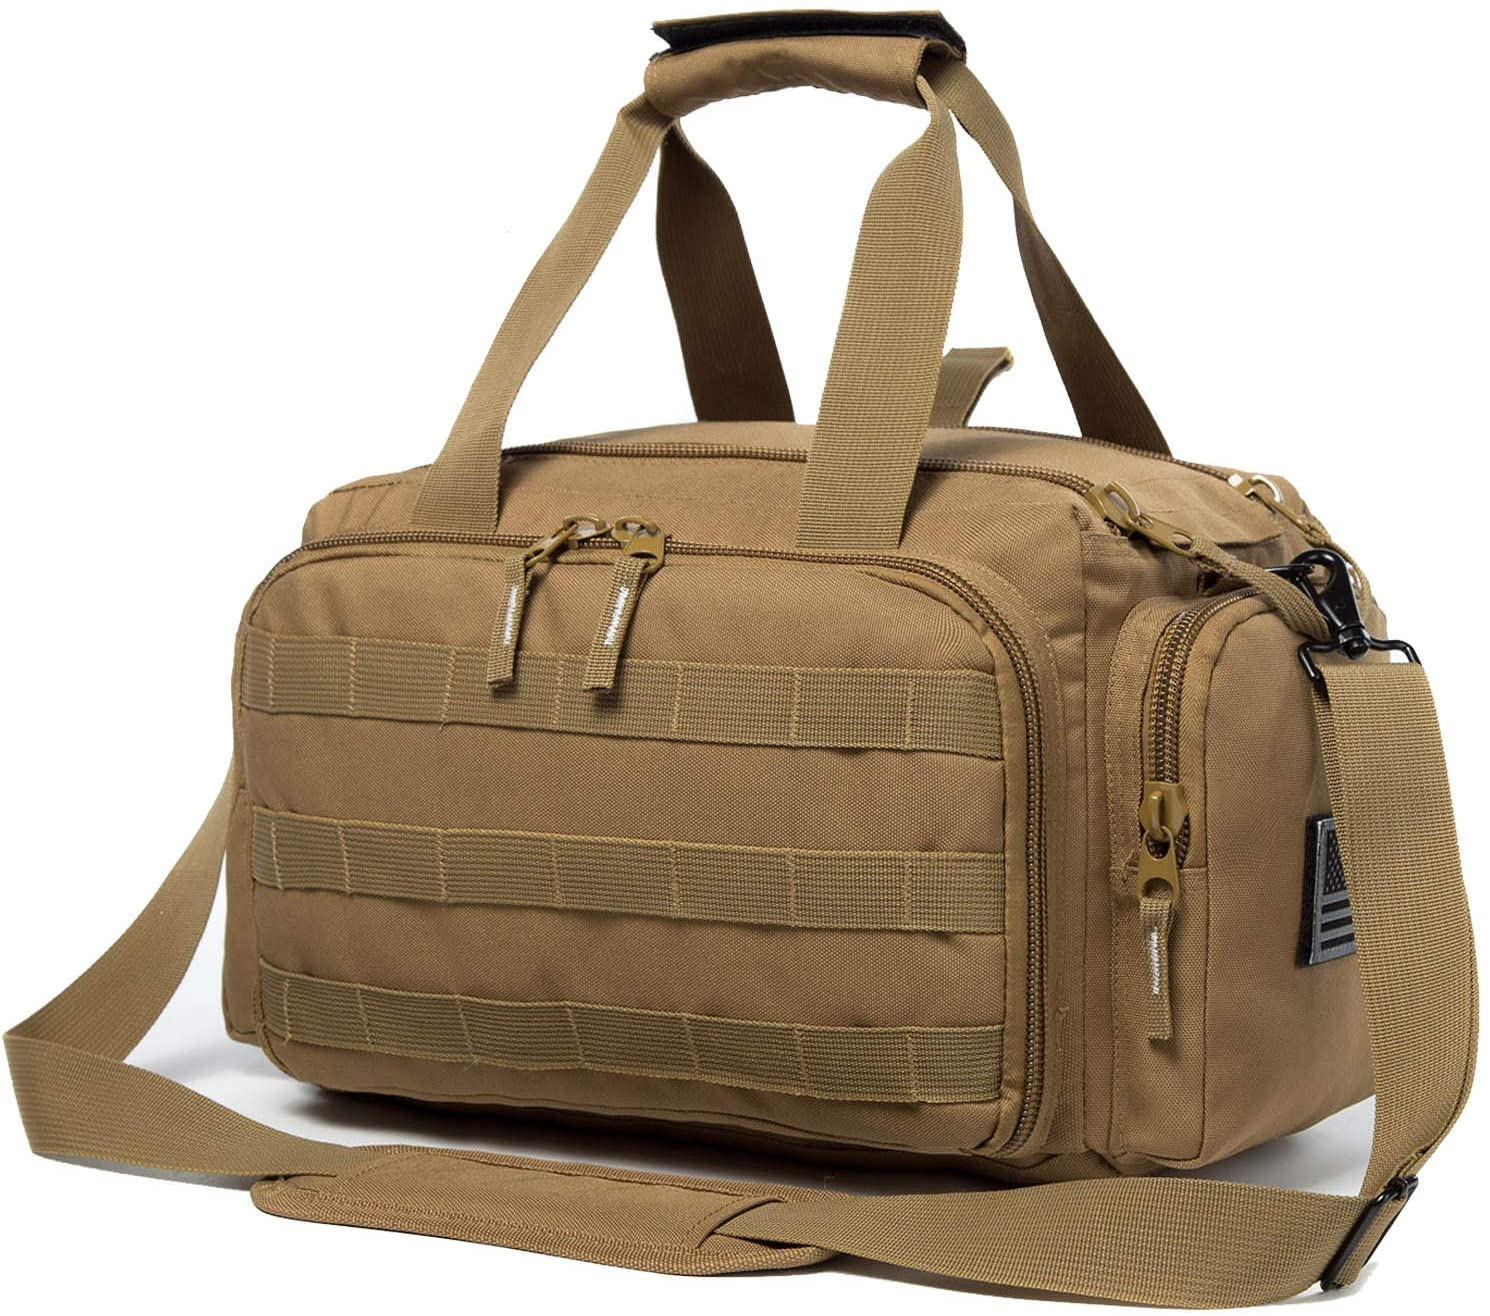 APESNOIC Range Bag Water-Resistant Tactical Gun Range Bag for Handguns Shooting Range Duffle Bags with USA Flag Patch Included.